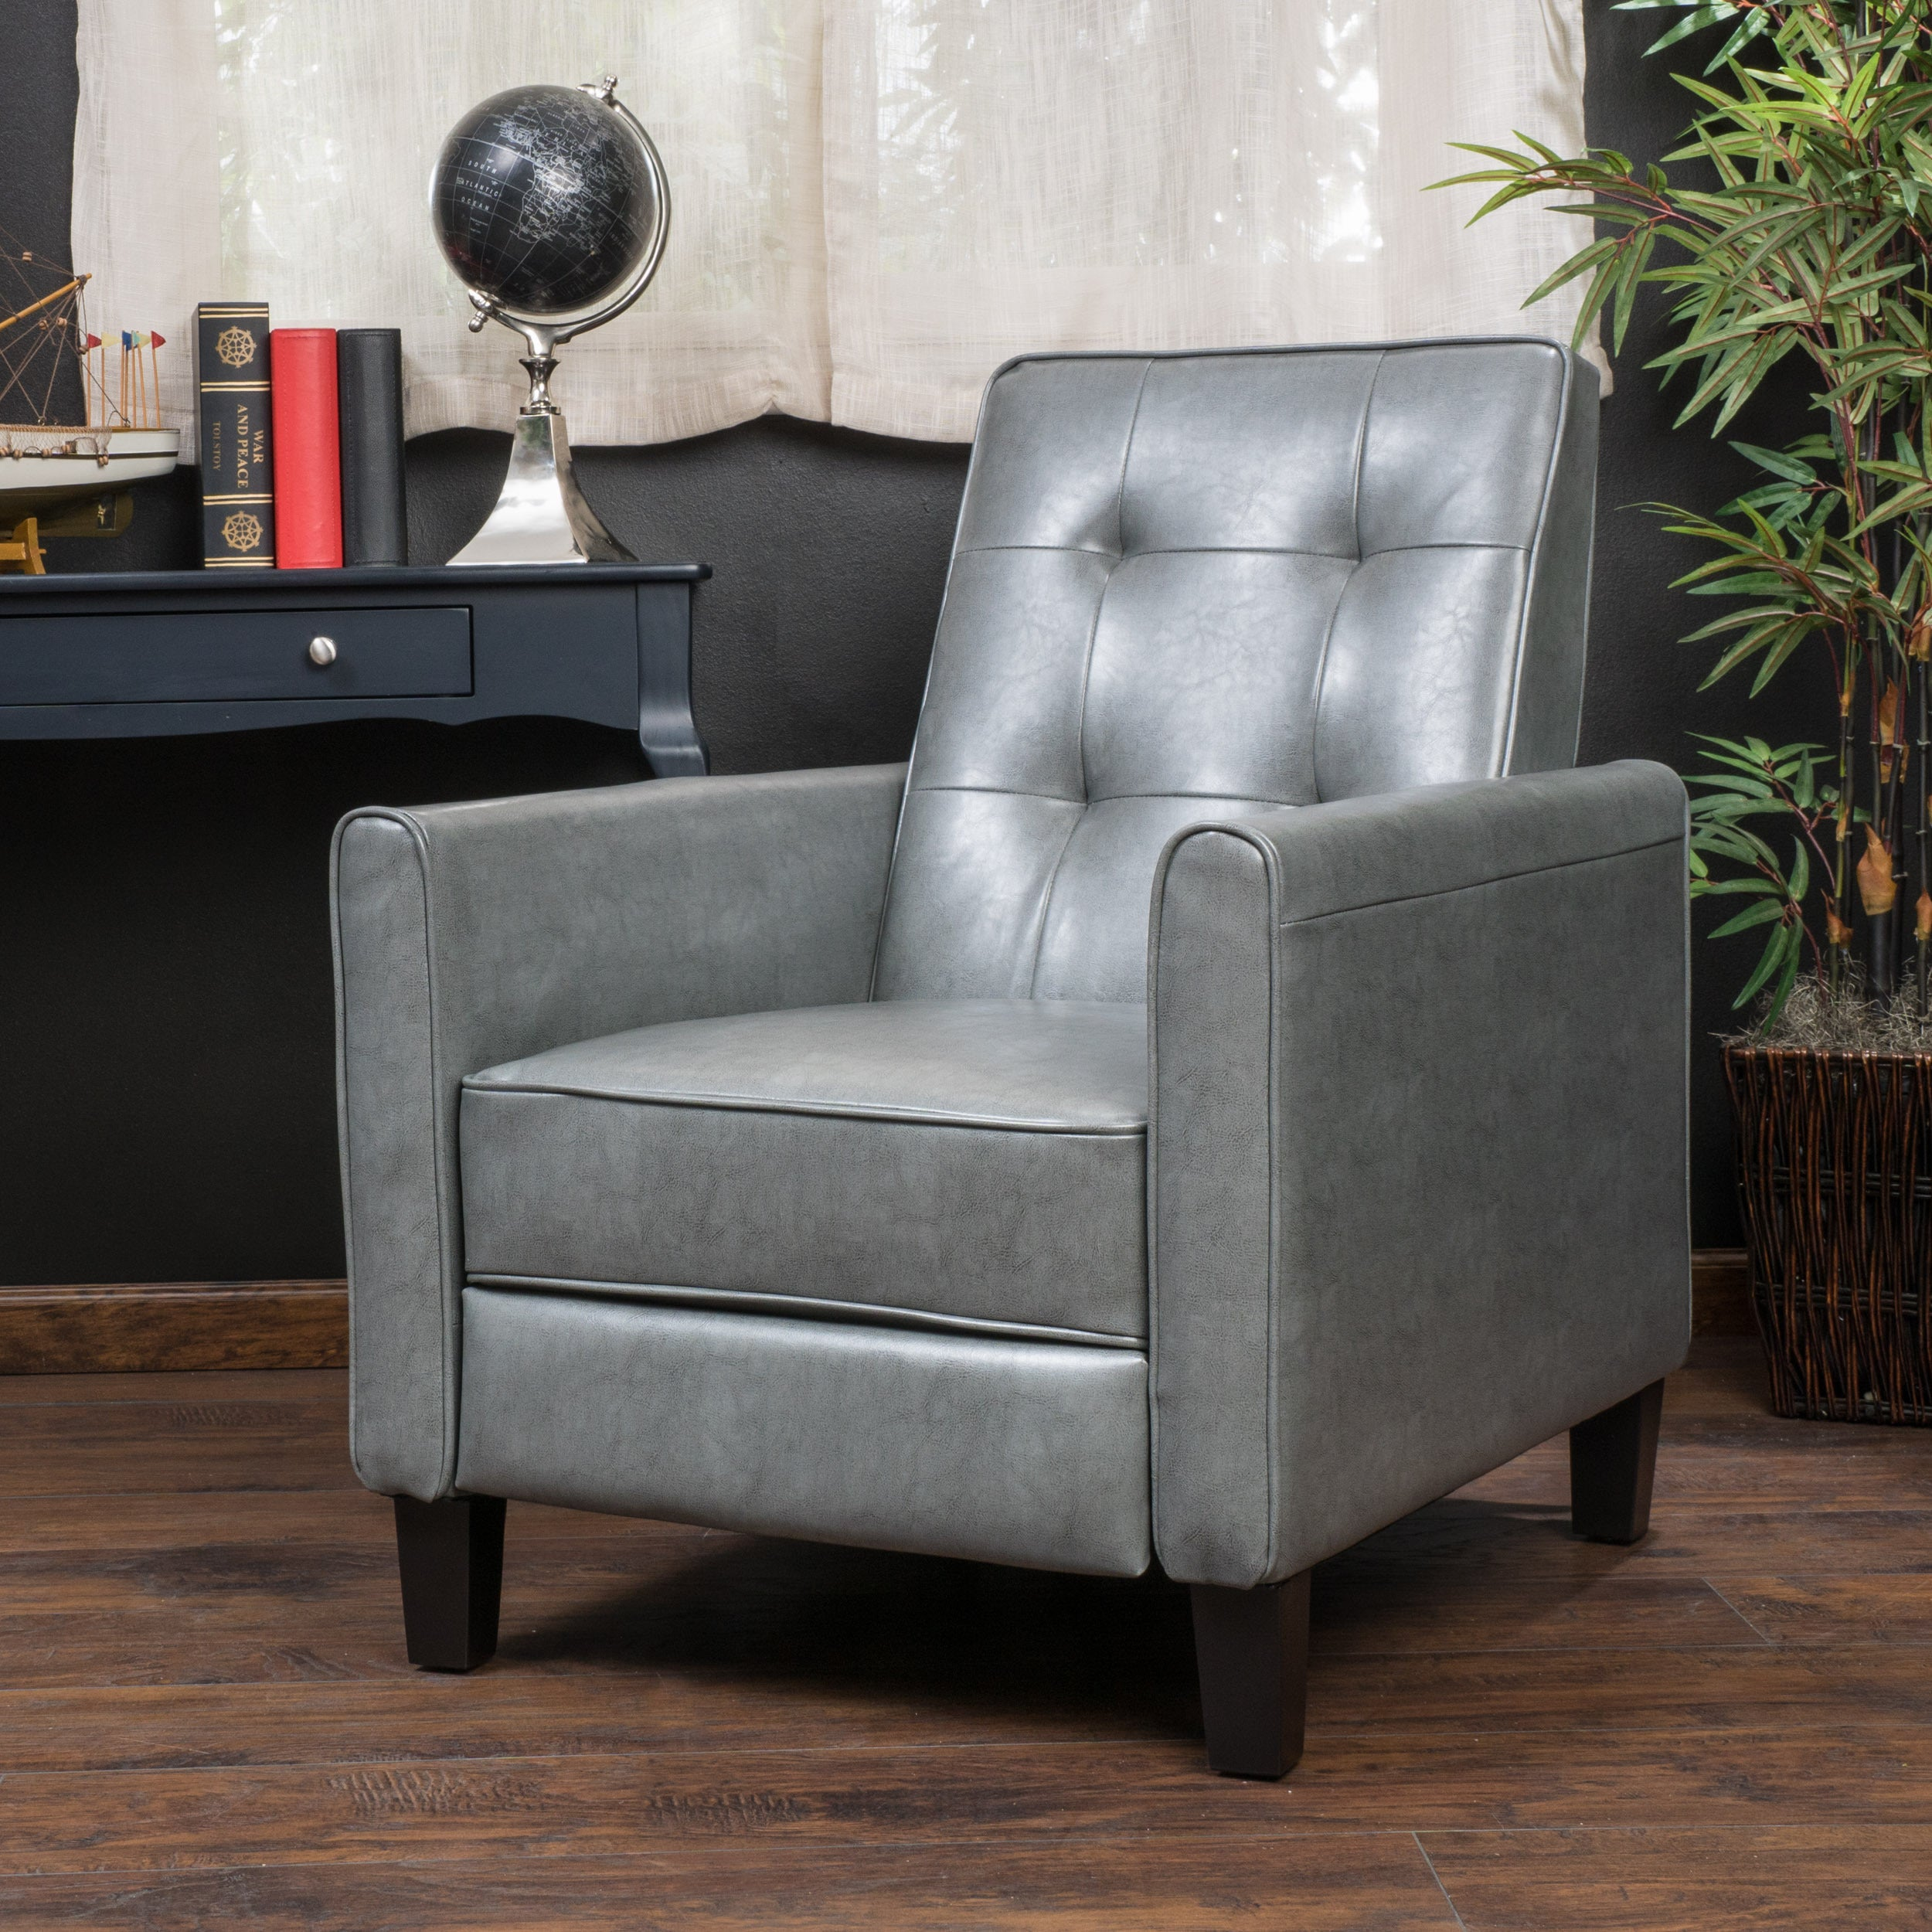 Ordinaire Shop Ethan Tufted Bonded Leather Recliner Chair By Christopher Knight Home    Free Shipping Today   Overstock.com   10325246